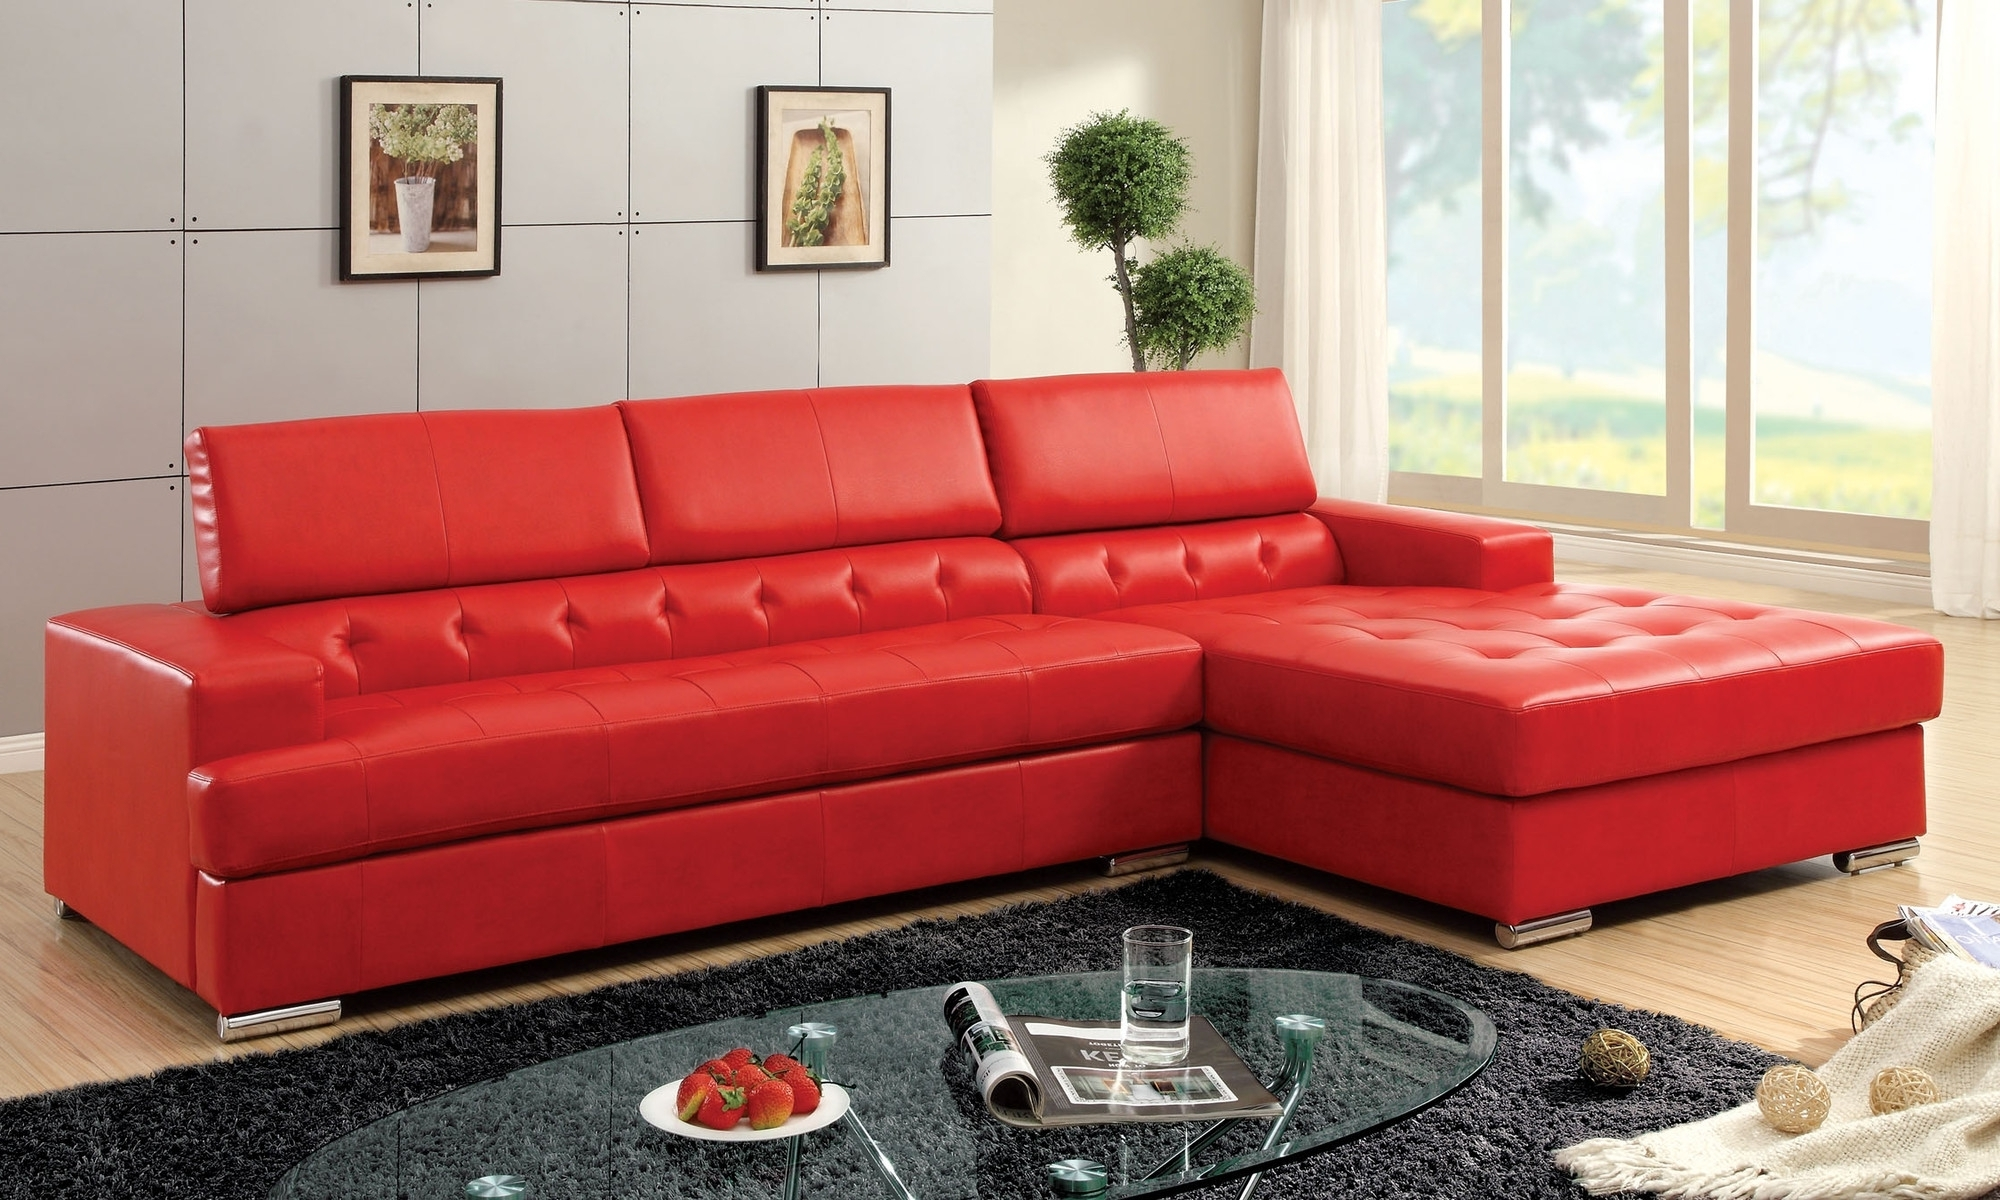 Small Red Leather Sectional Sofa • Leather Sofa Regarding Favorite Small Red Leather Sectional Sofas (View 12 of 20)